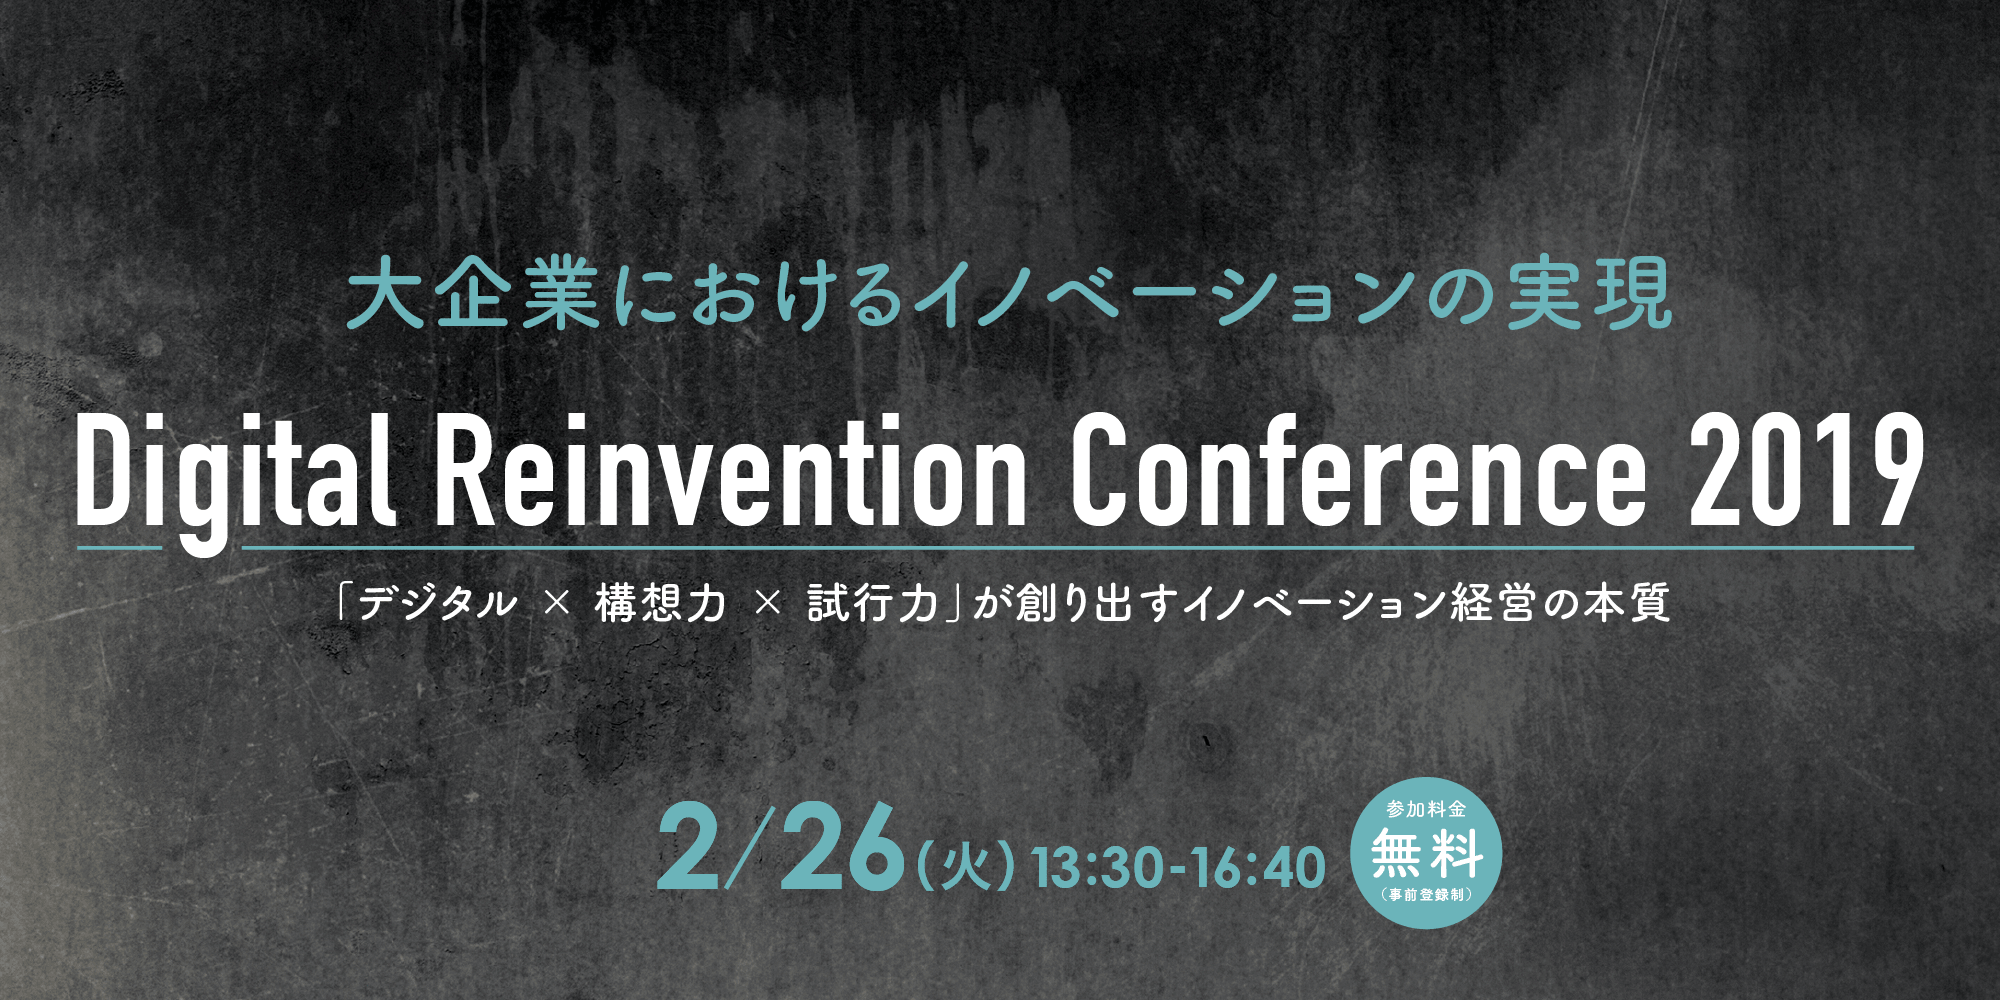 Digital Reinvention Conference 2019